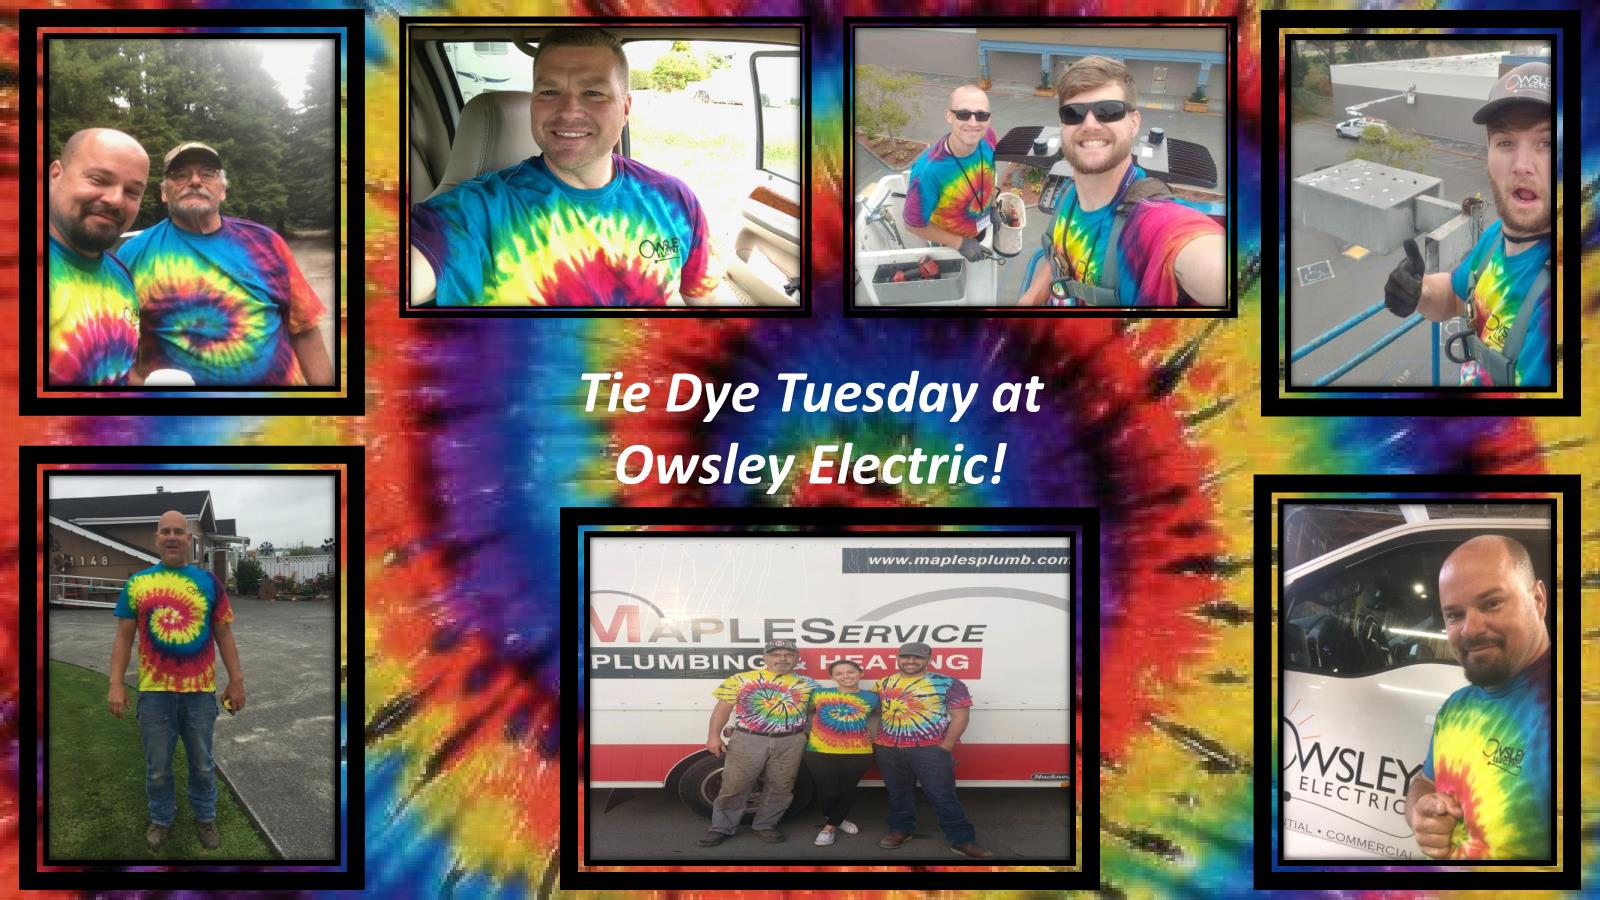 Workable Owsley Electric Tie Dye Tuesday